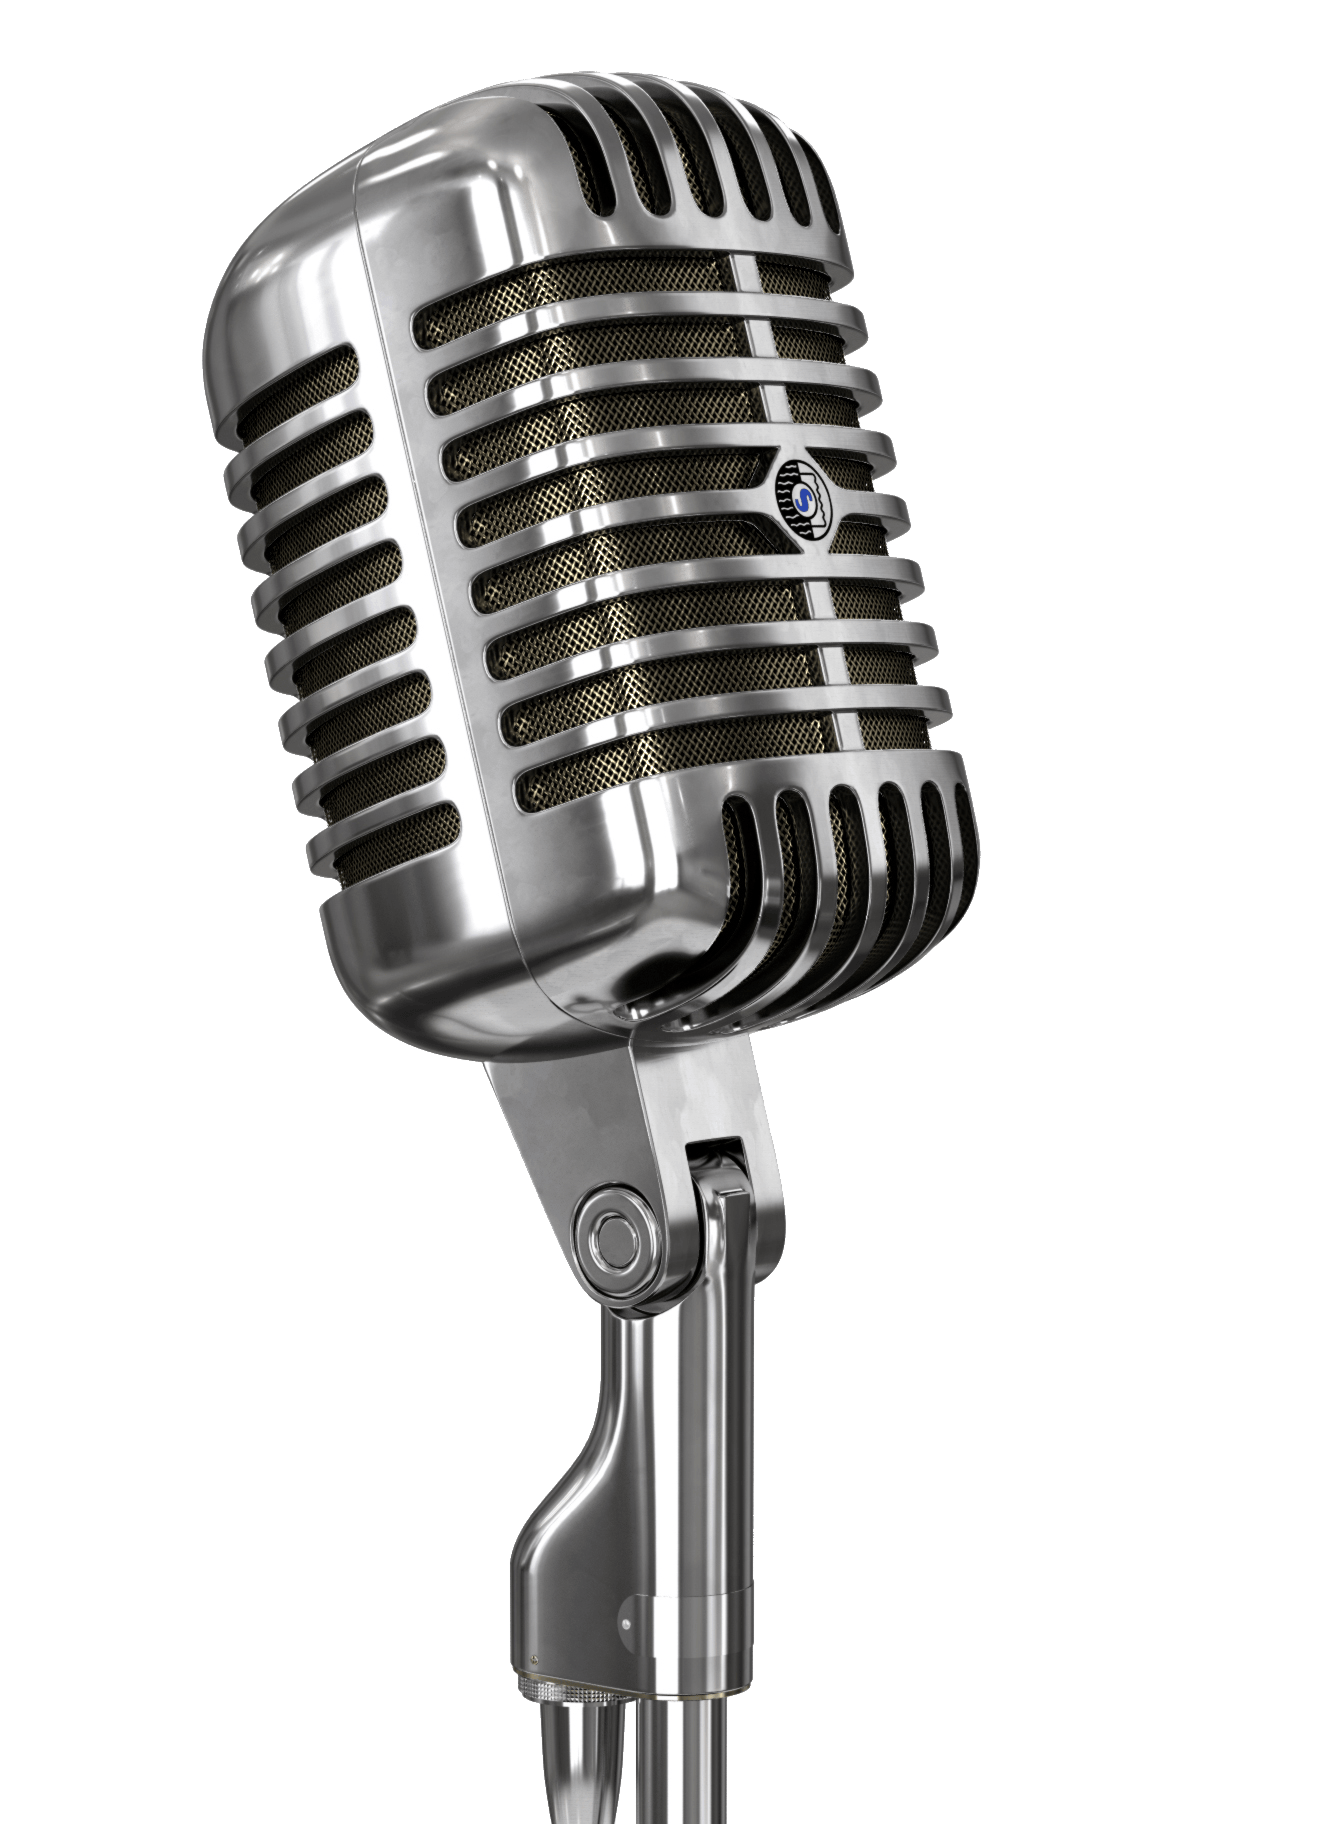 microphone clipart old school